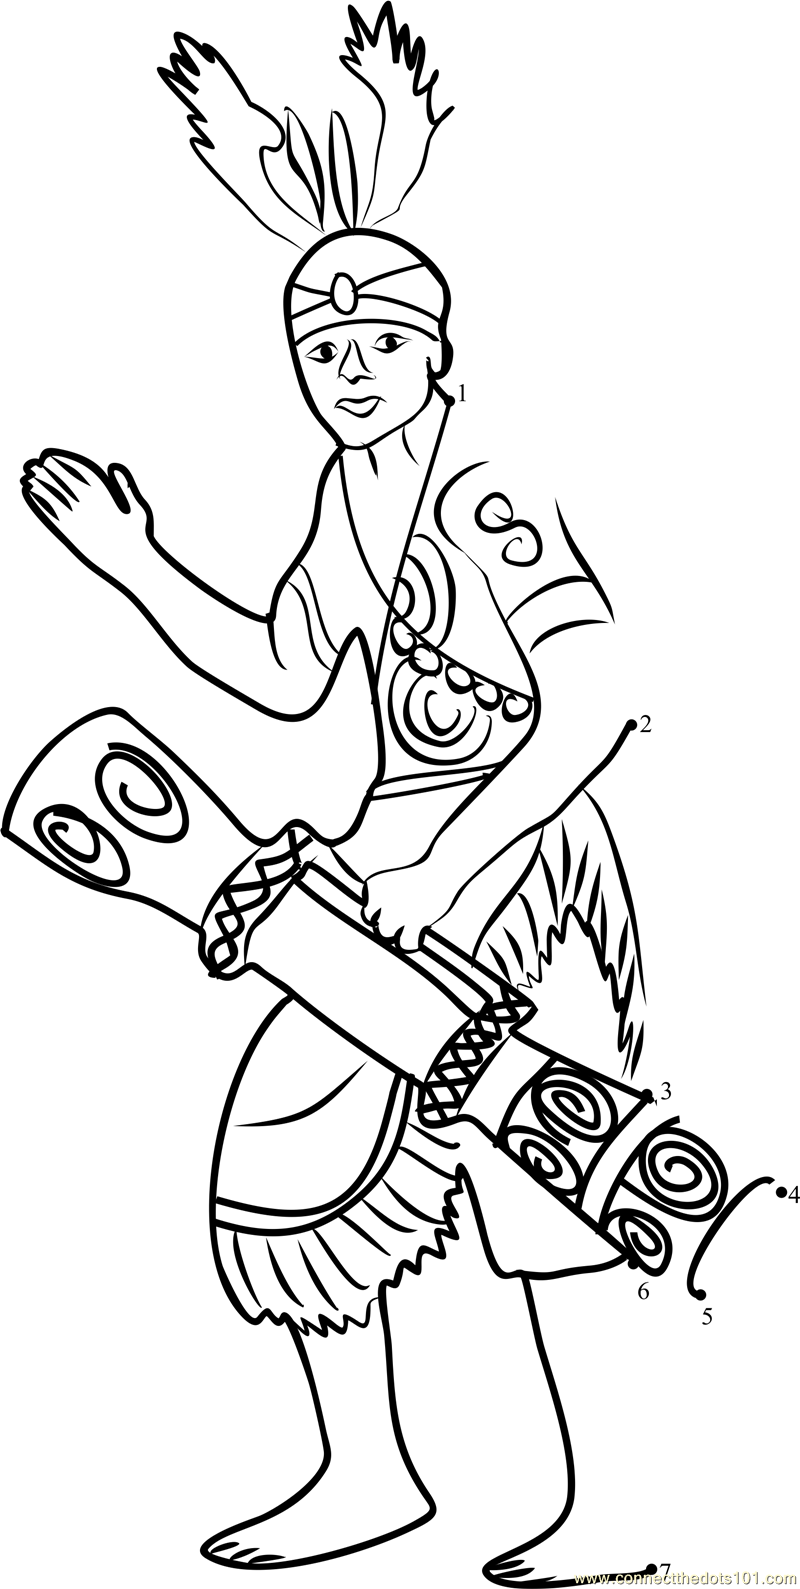 indonesian coloring pages - photo#6